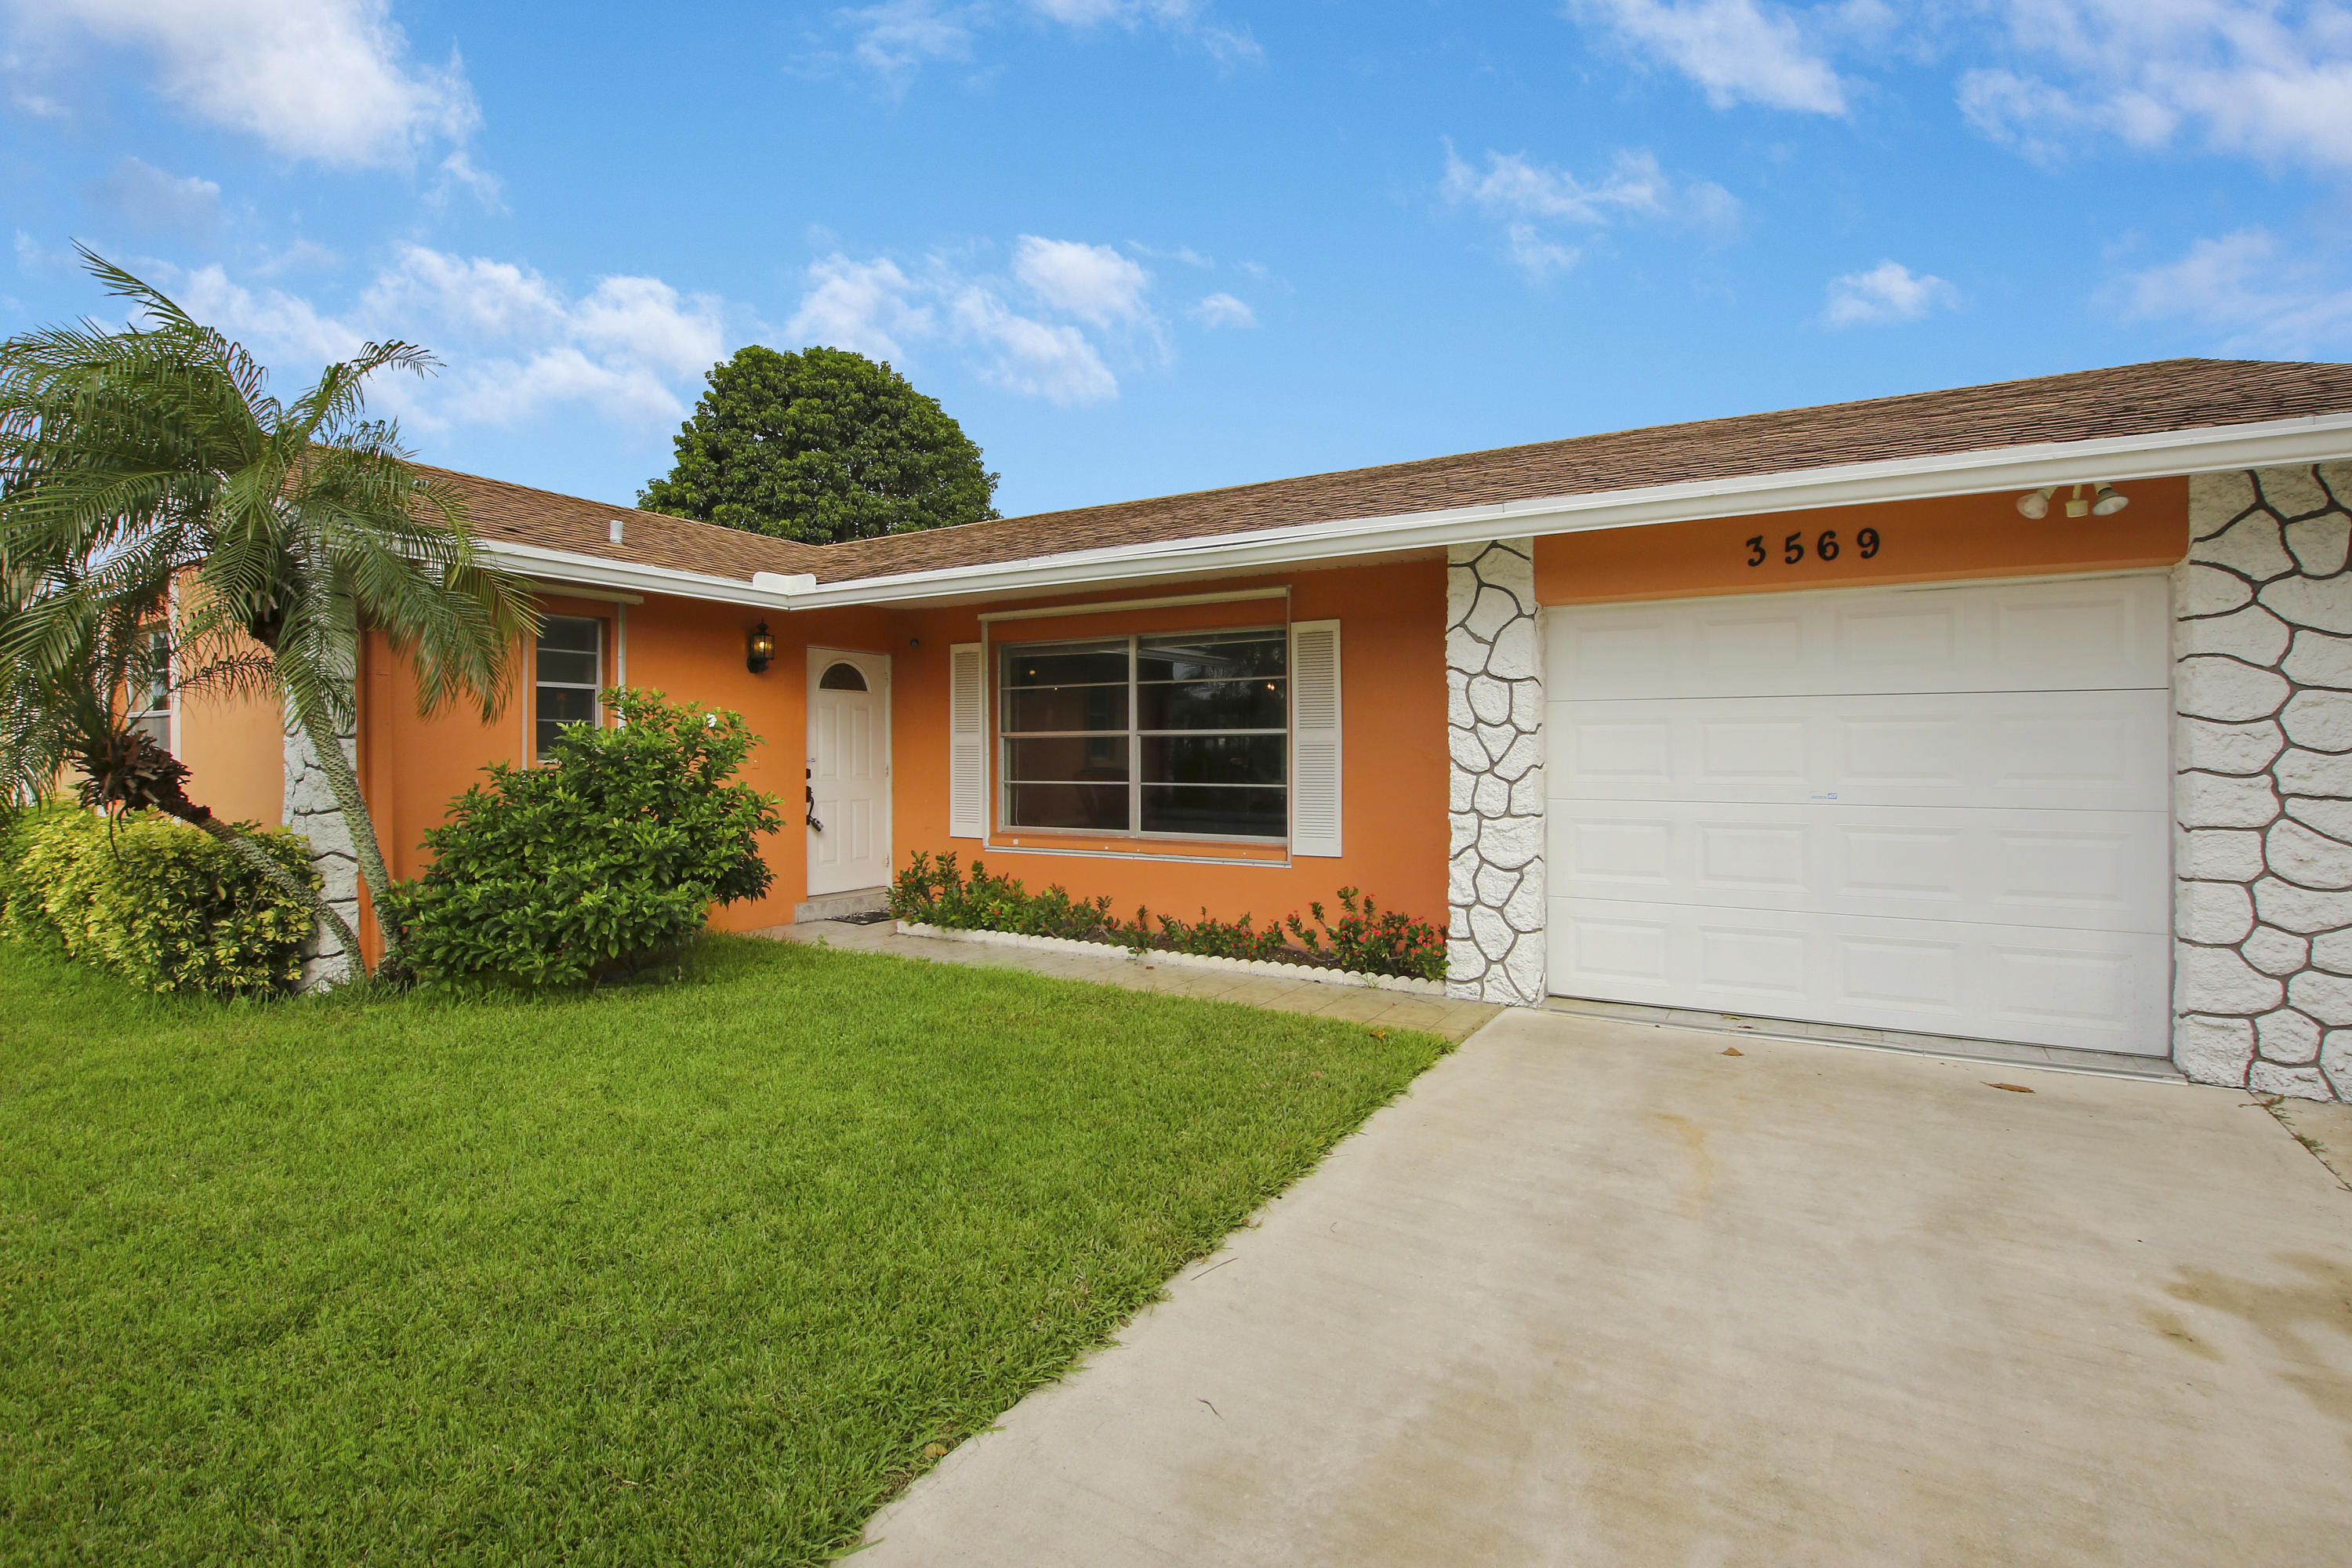 3569 Victoria Drive, West Palm Beach, FL 33406